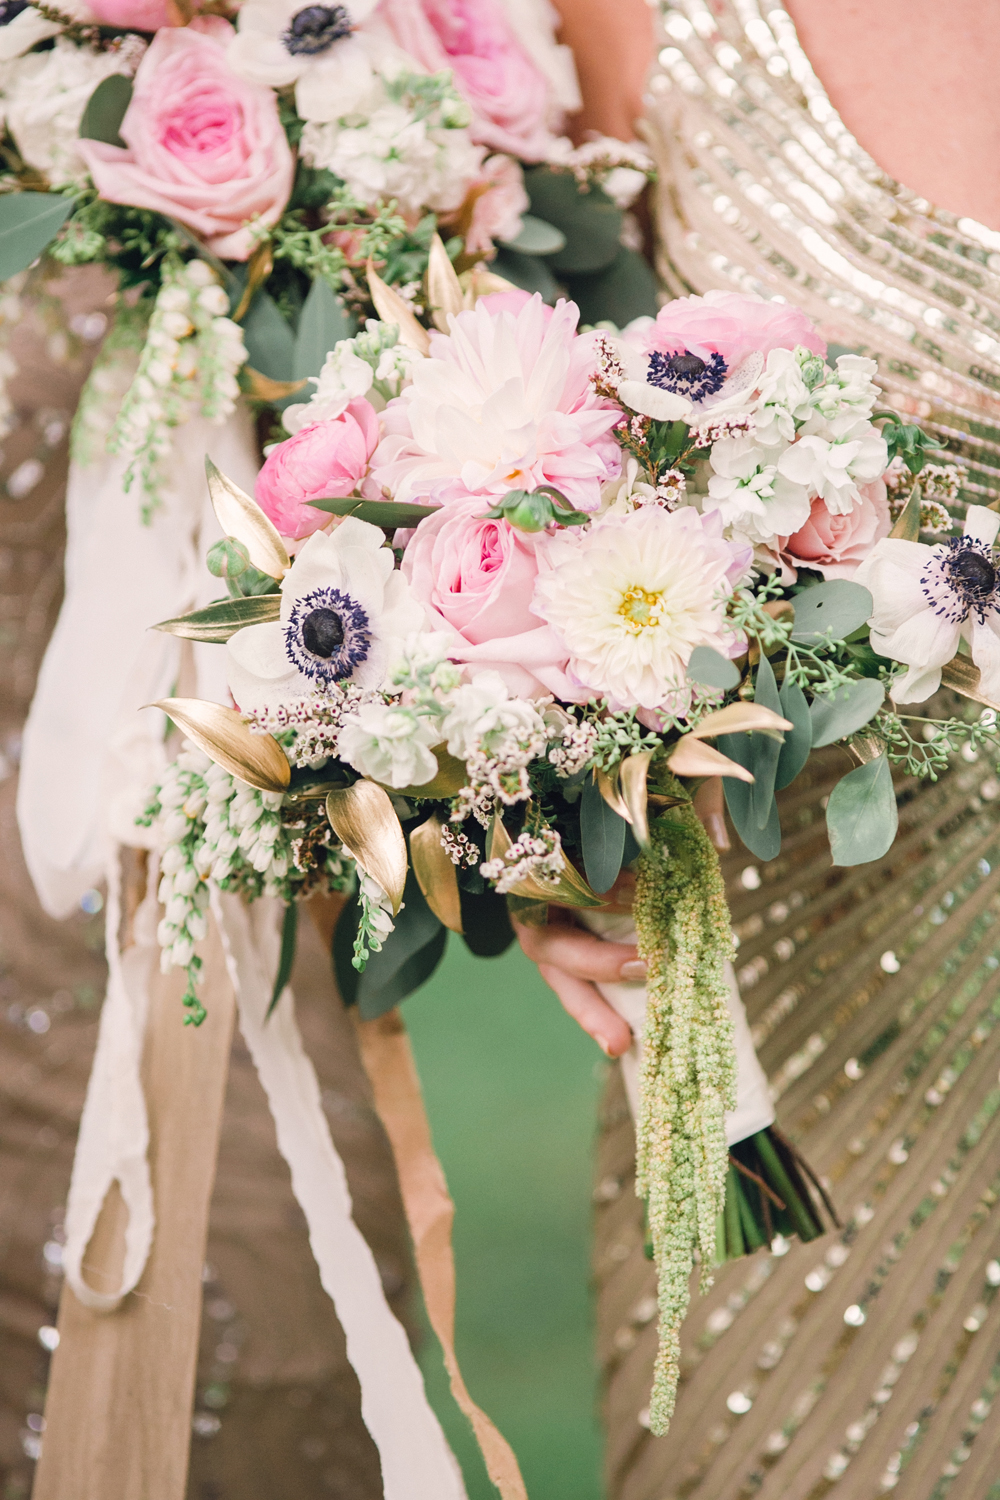 Wedding Trend Using Anemone Flowers In Decor